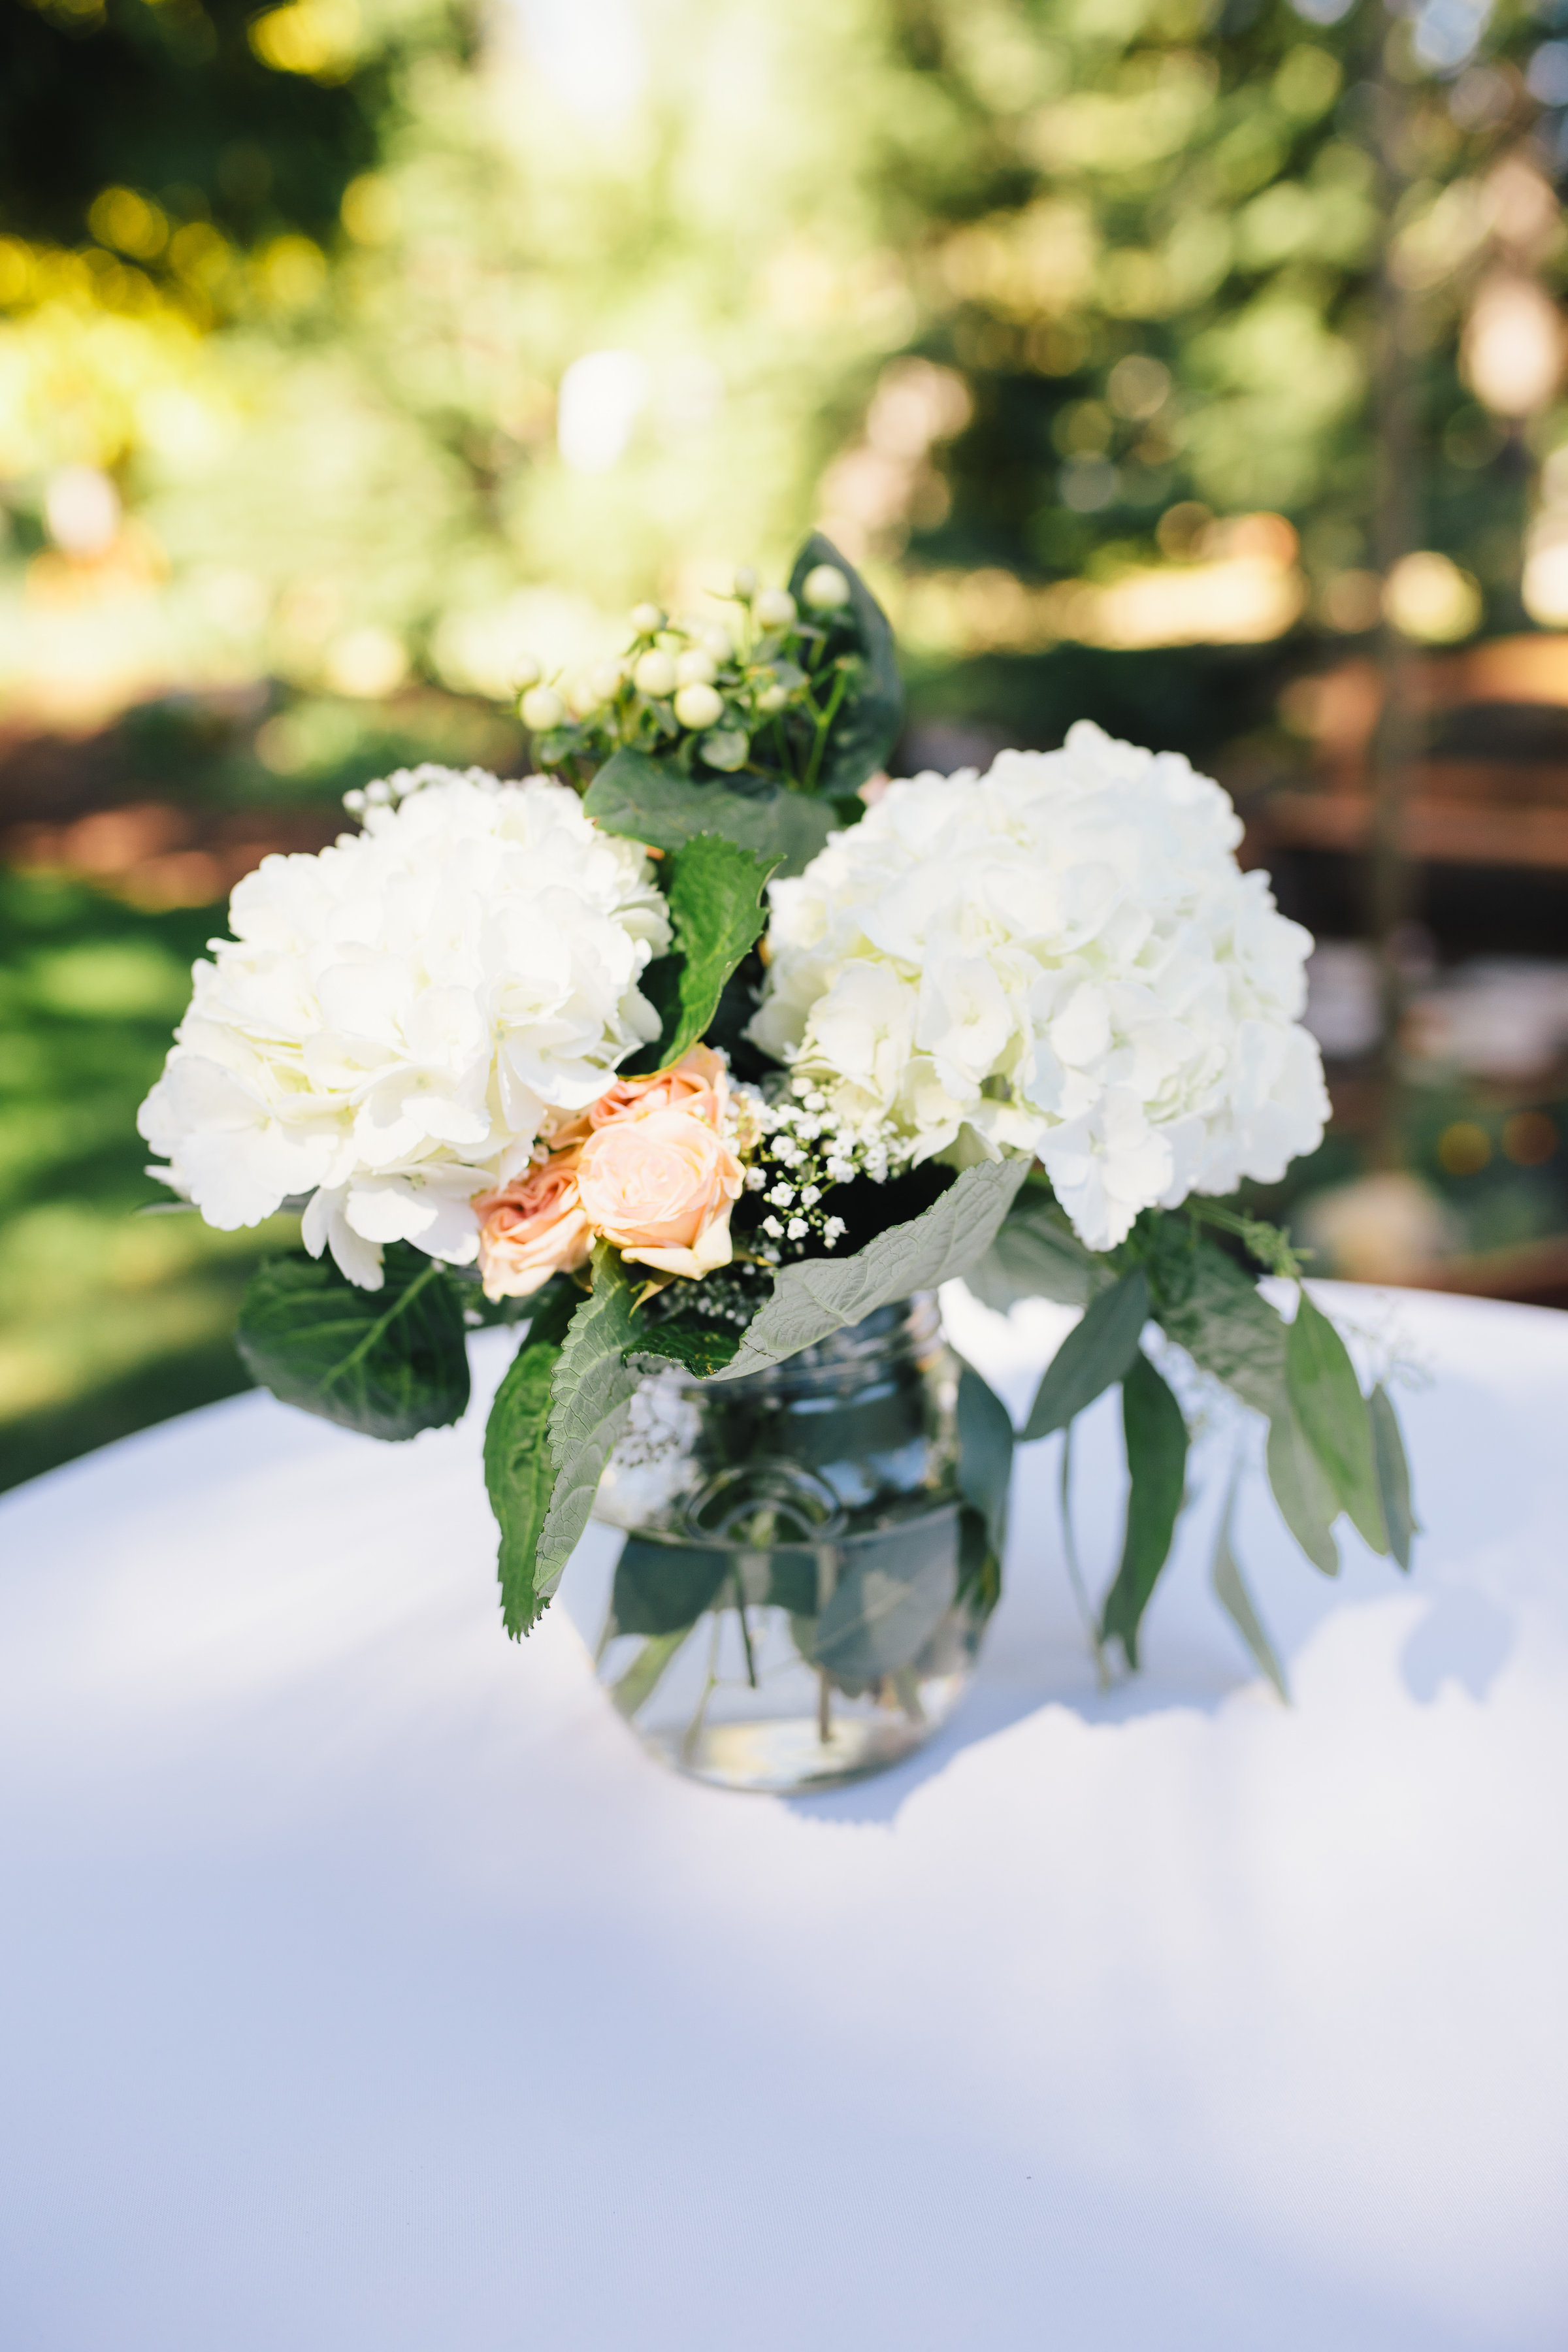 Above Larger Blooms Go Further Use One Or Two Large Such As Hydrangeas Football Mumix Them With Tufts Of Baby S Breath